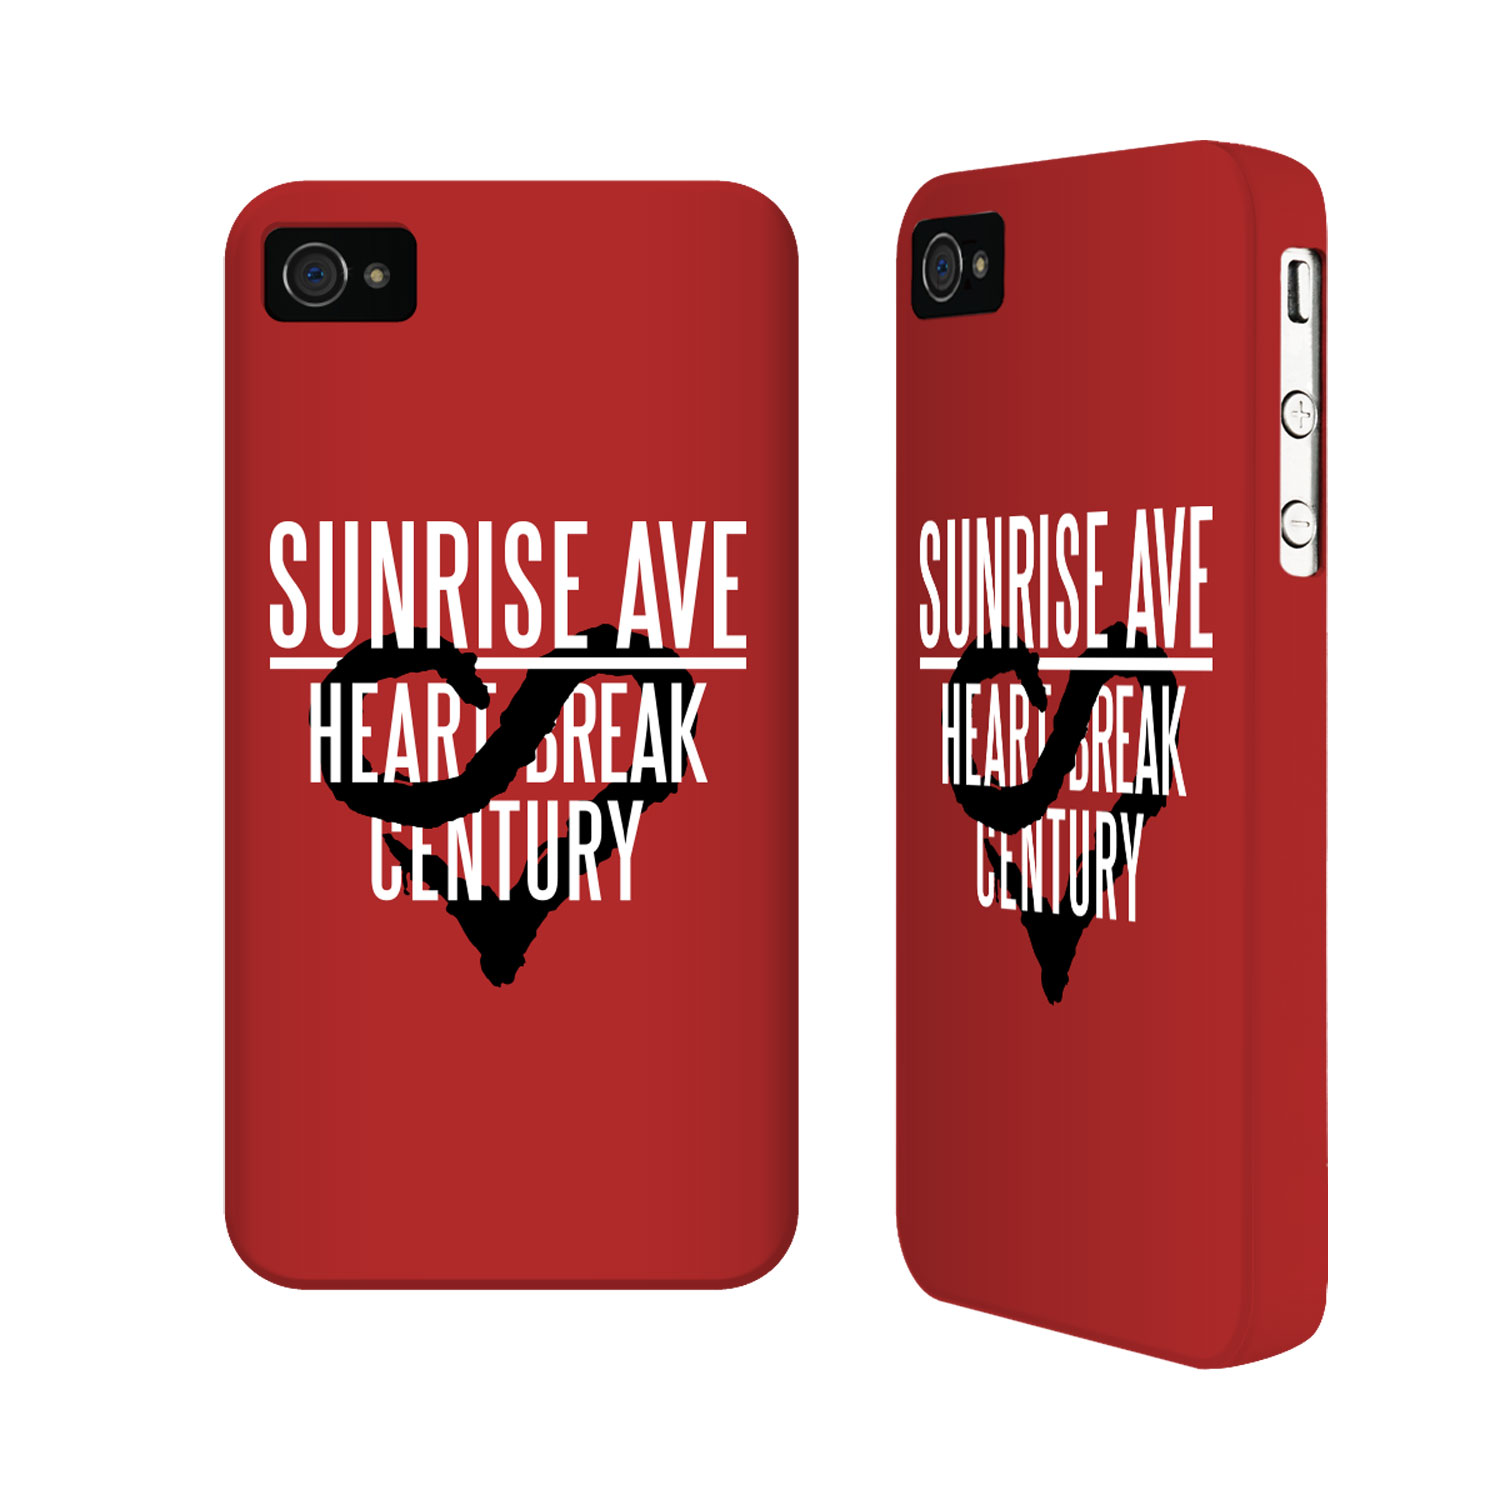 bravado heartbreak century sunrise avenue phone case. Black Bedroom Furniture Sets. Home Design Ideas